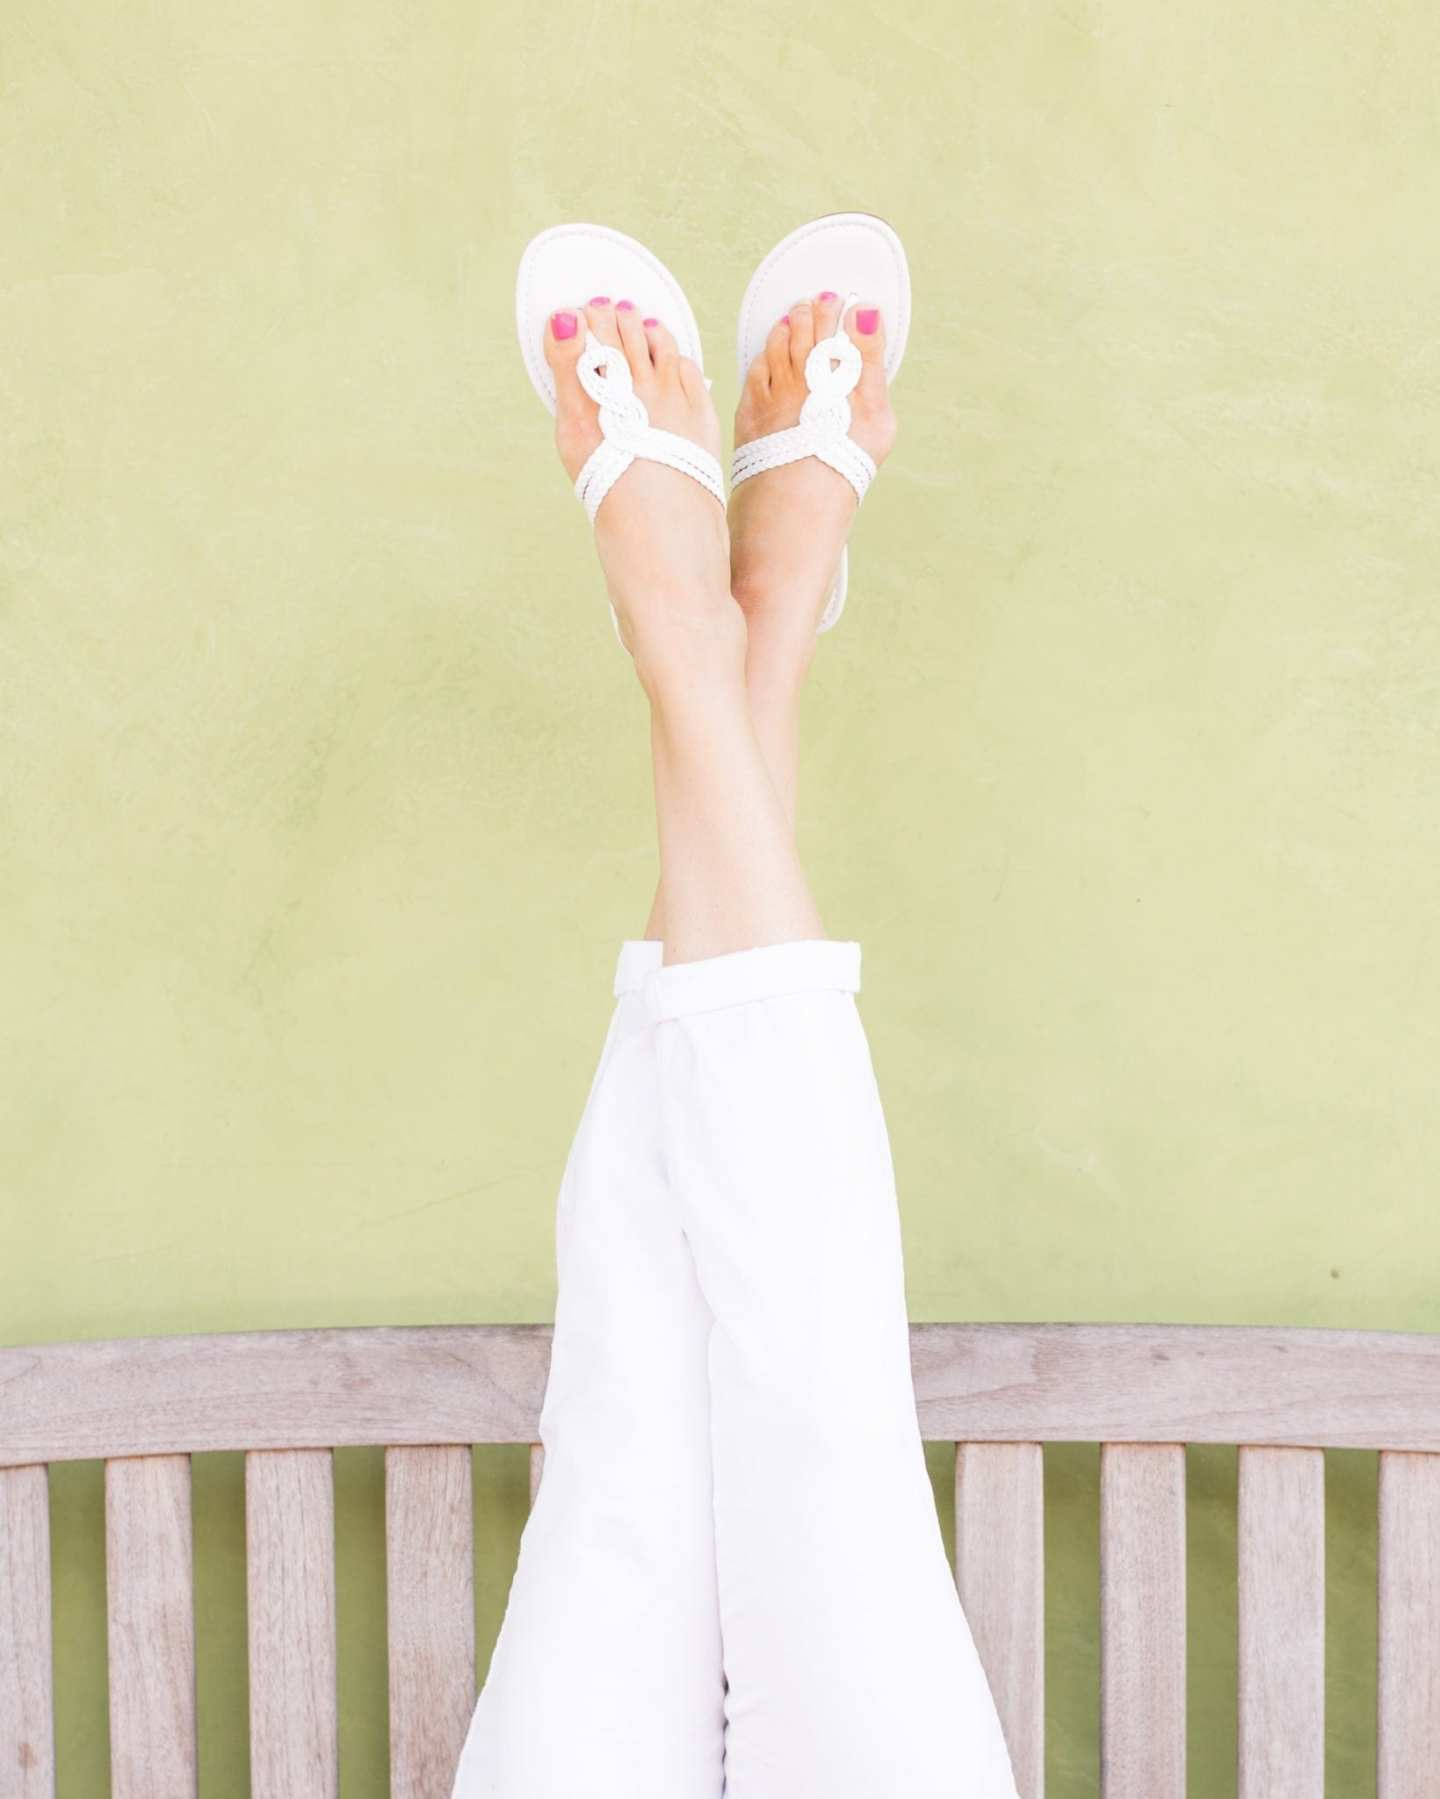 White braided sandals on sale. How to wear white shoes with white pants.